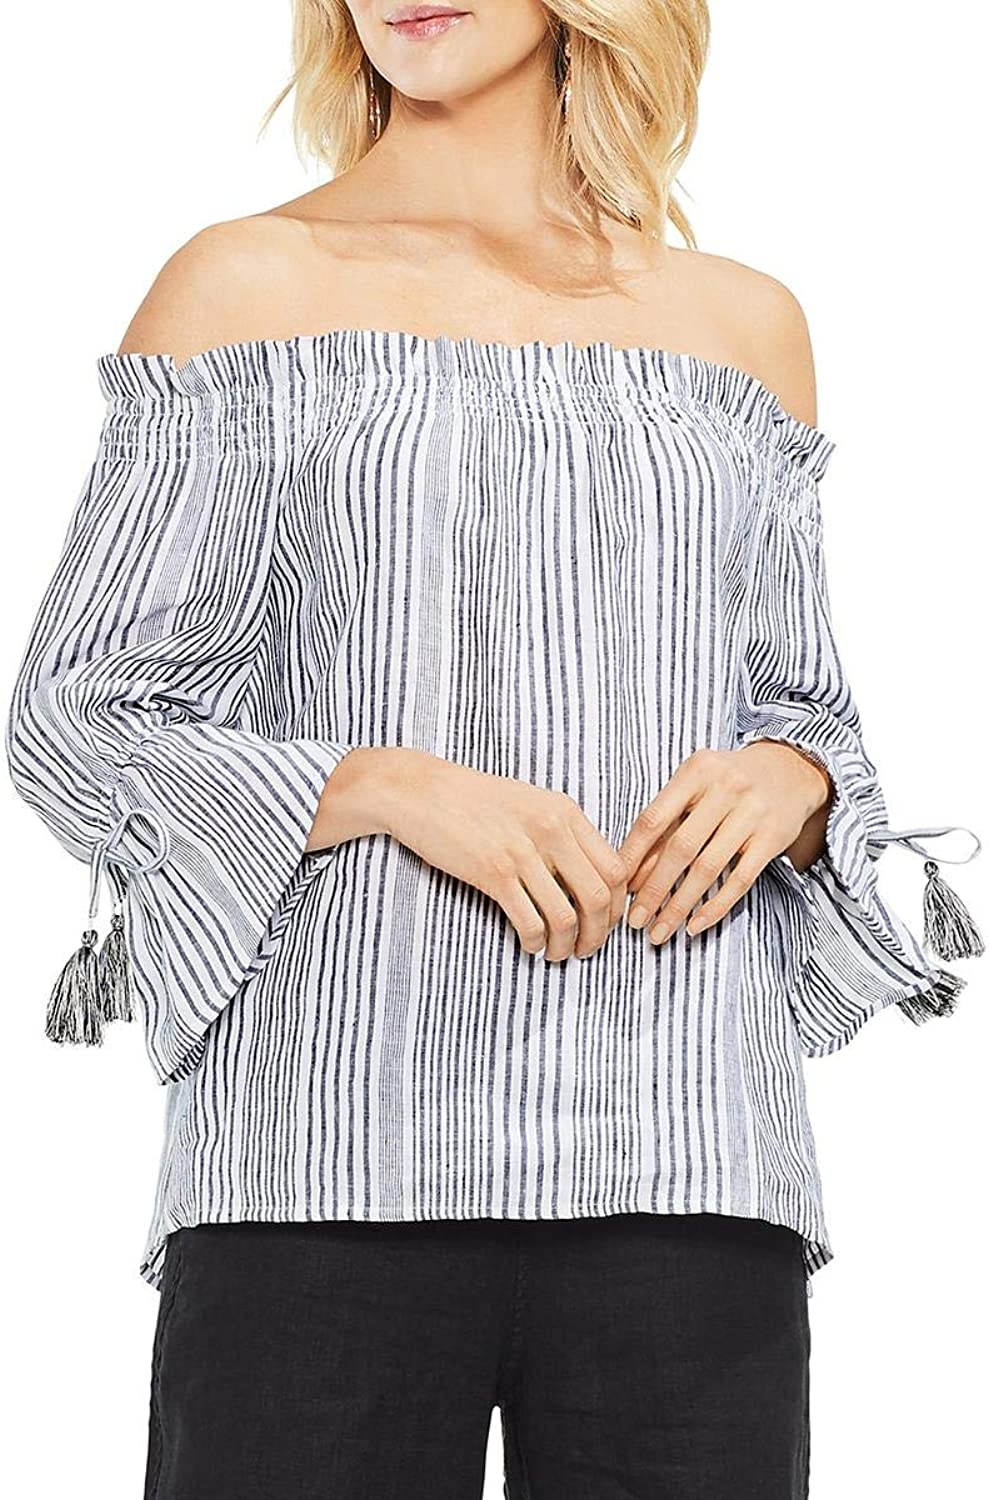 Vince Camuto Womens Linen OffTheShoulder Blouse